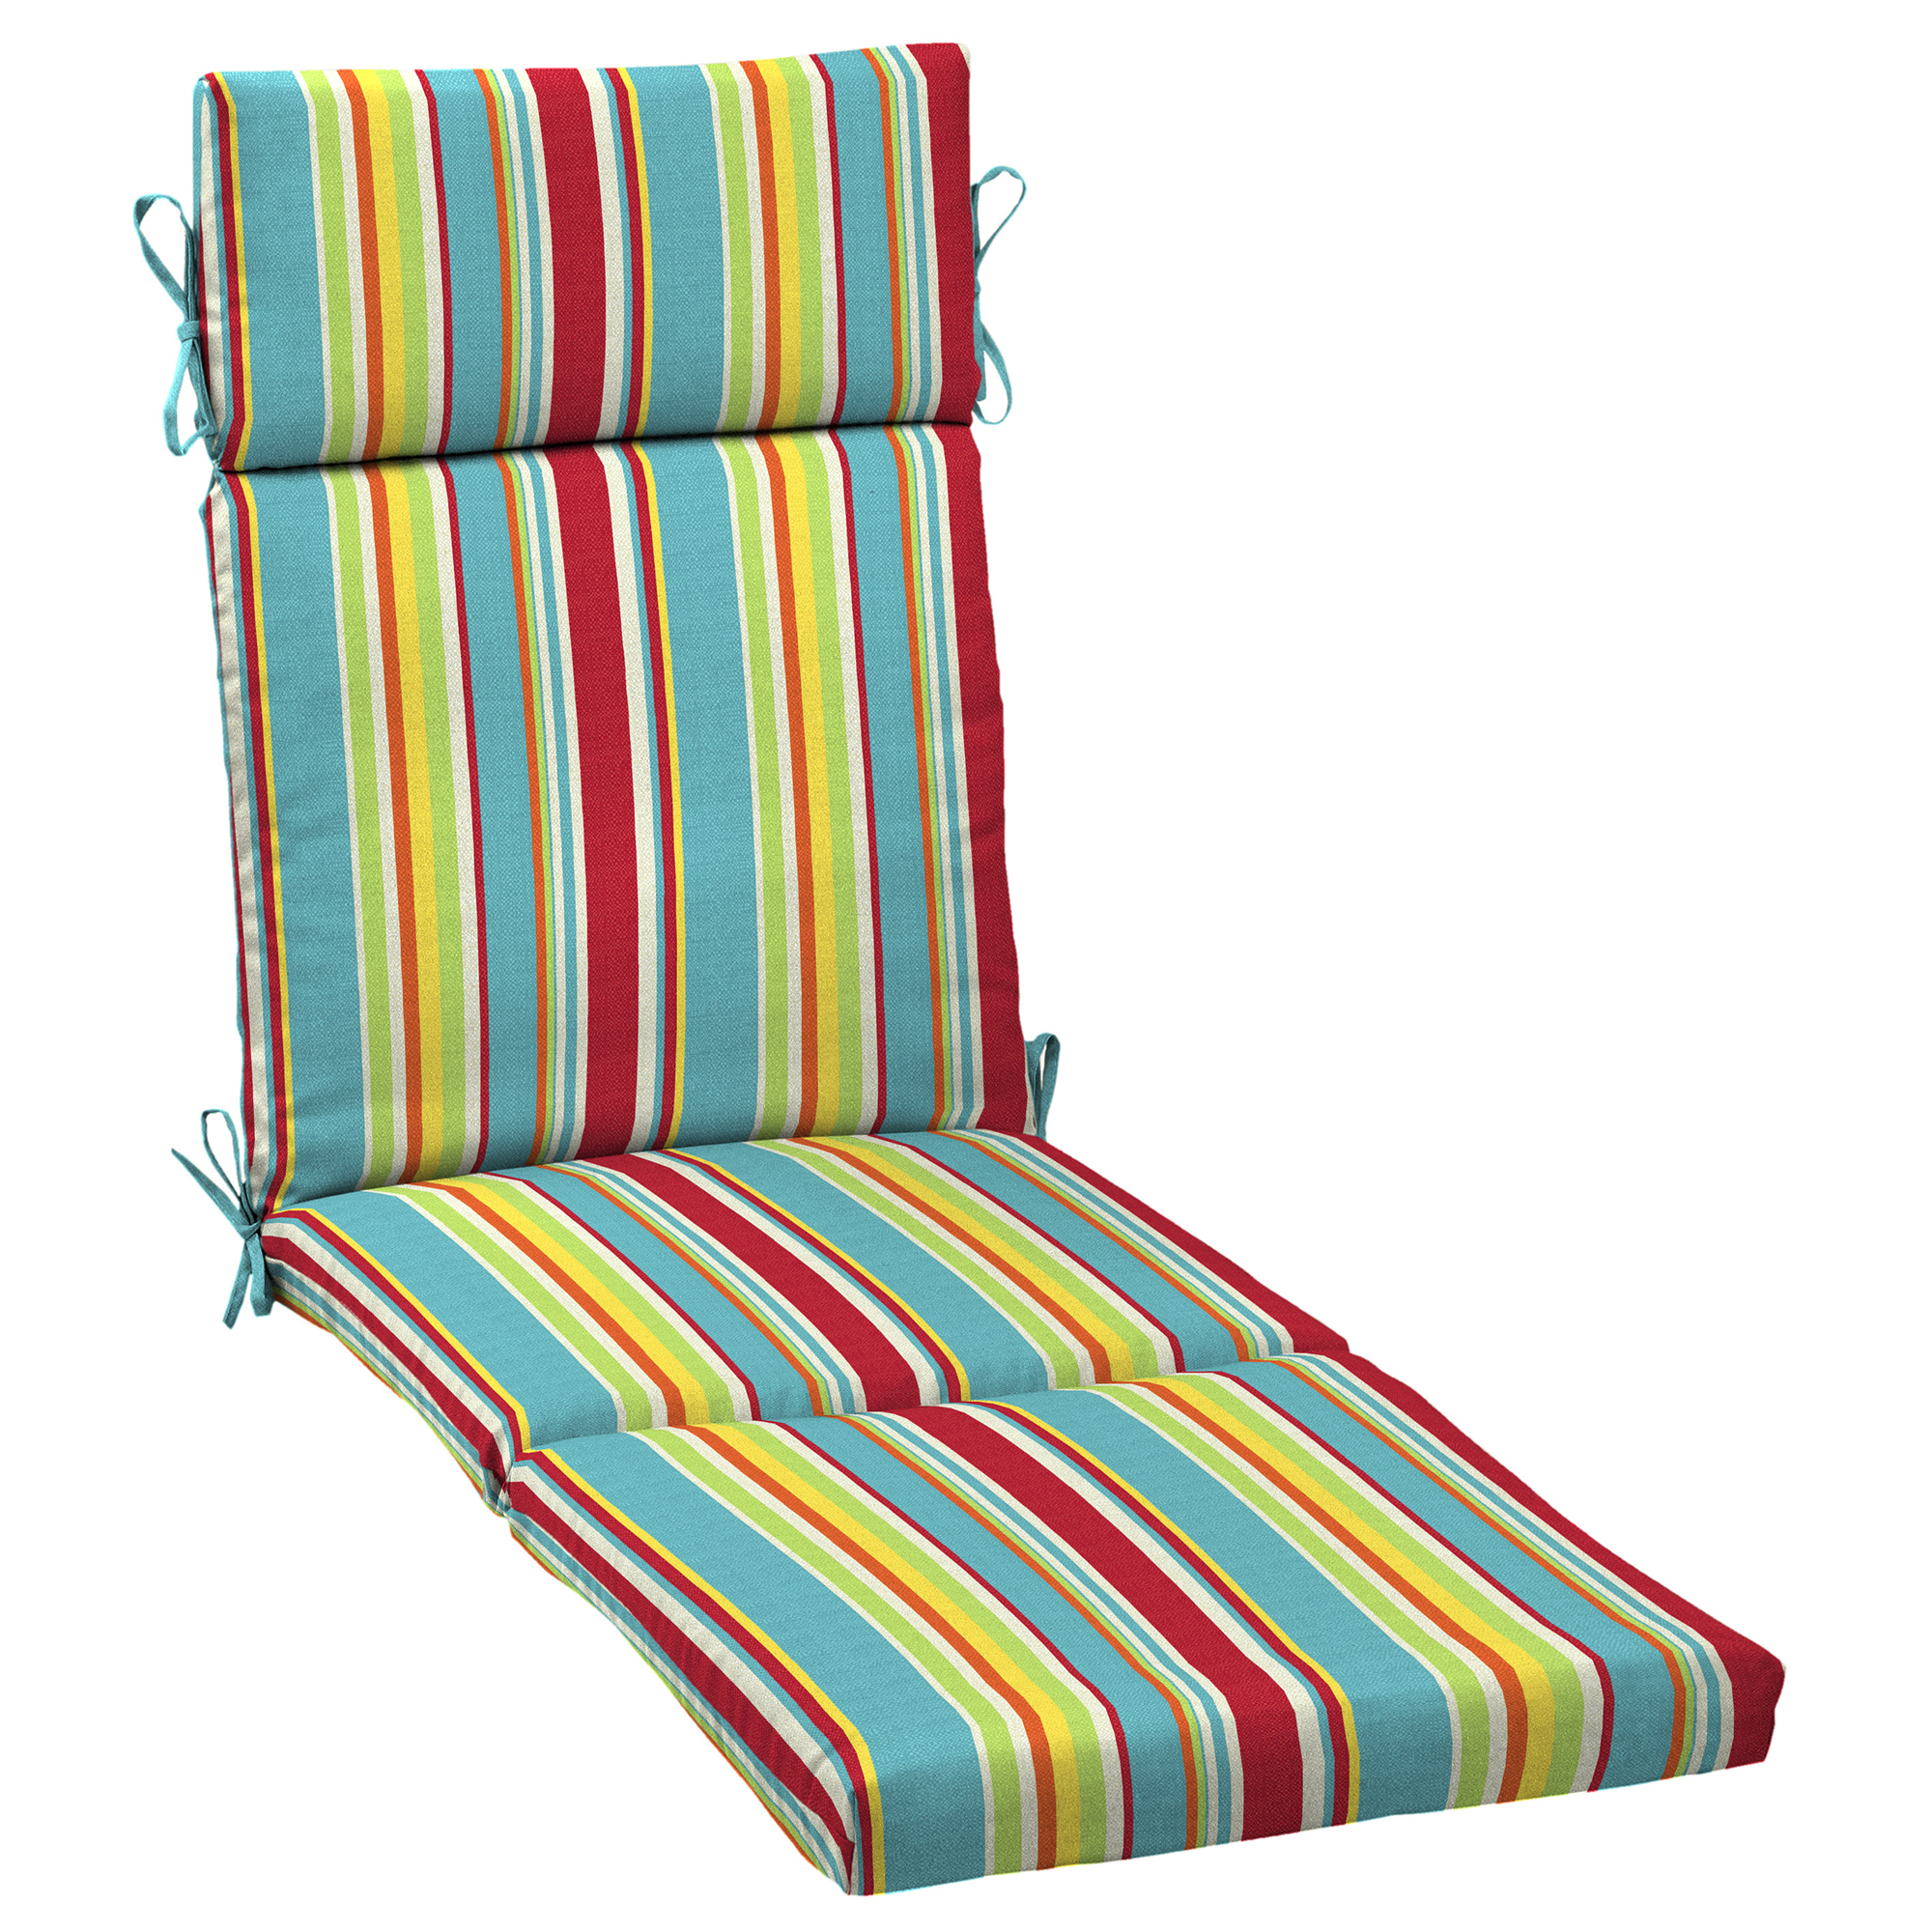 Mainstays Multi Stripe Outdoor 72 x 21 in. Chaise Lounge Cushion